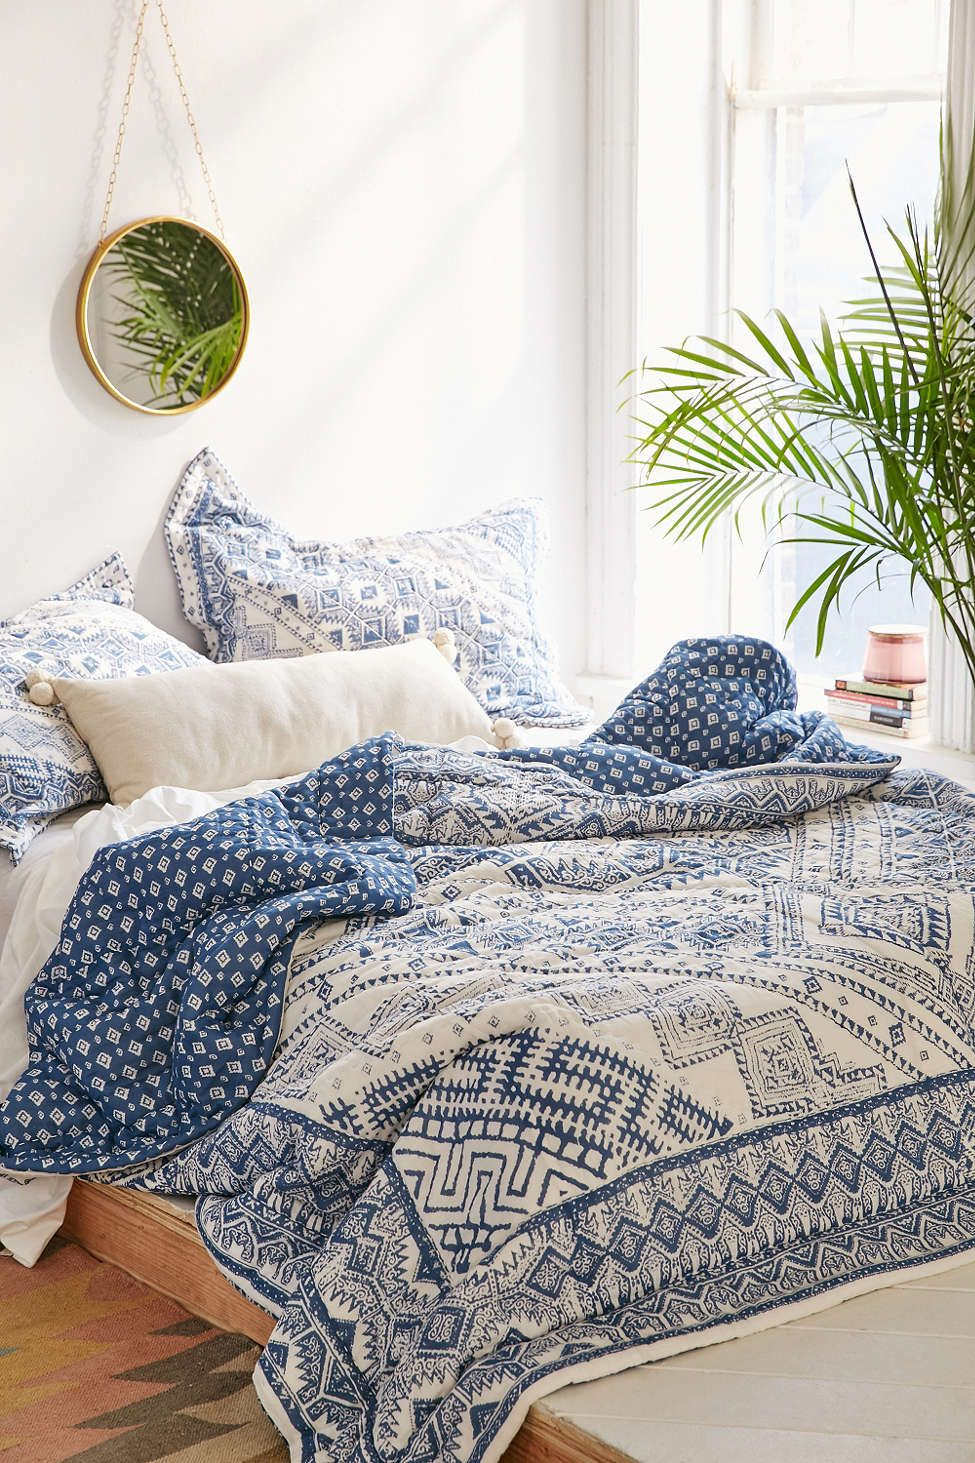 magical thinking echo graphic quilt urban outfitters bedroom pinterest. Black Bedroom Furniture Sets. Home Design Ideas